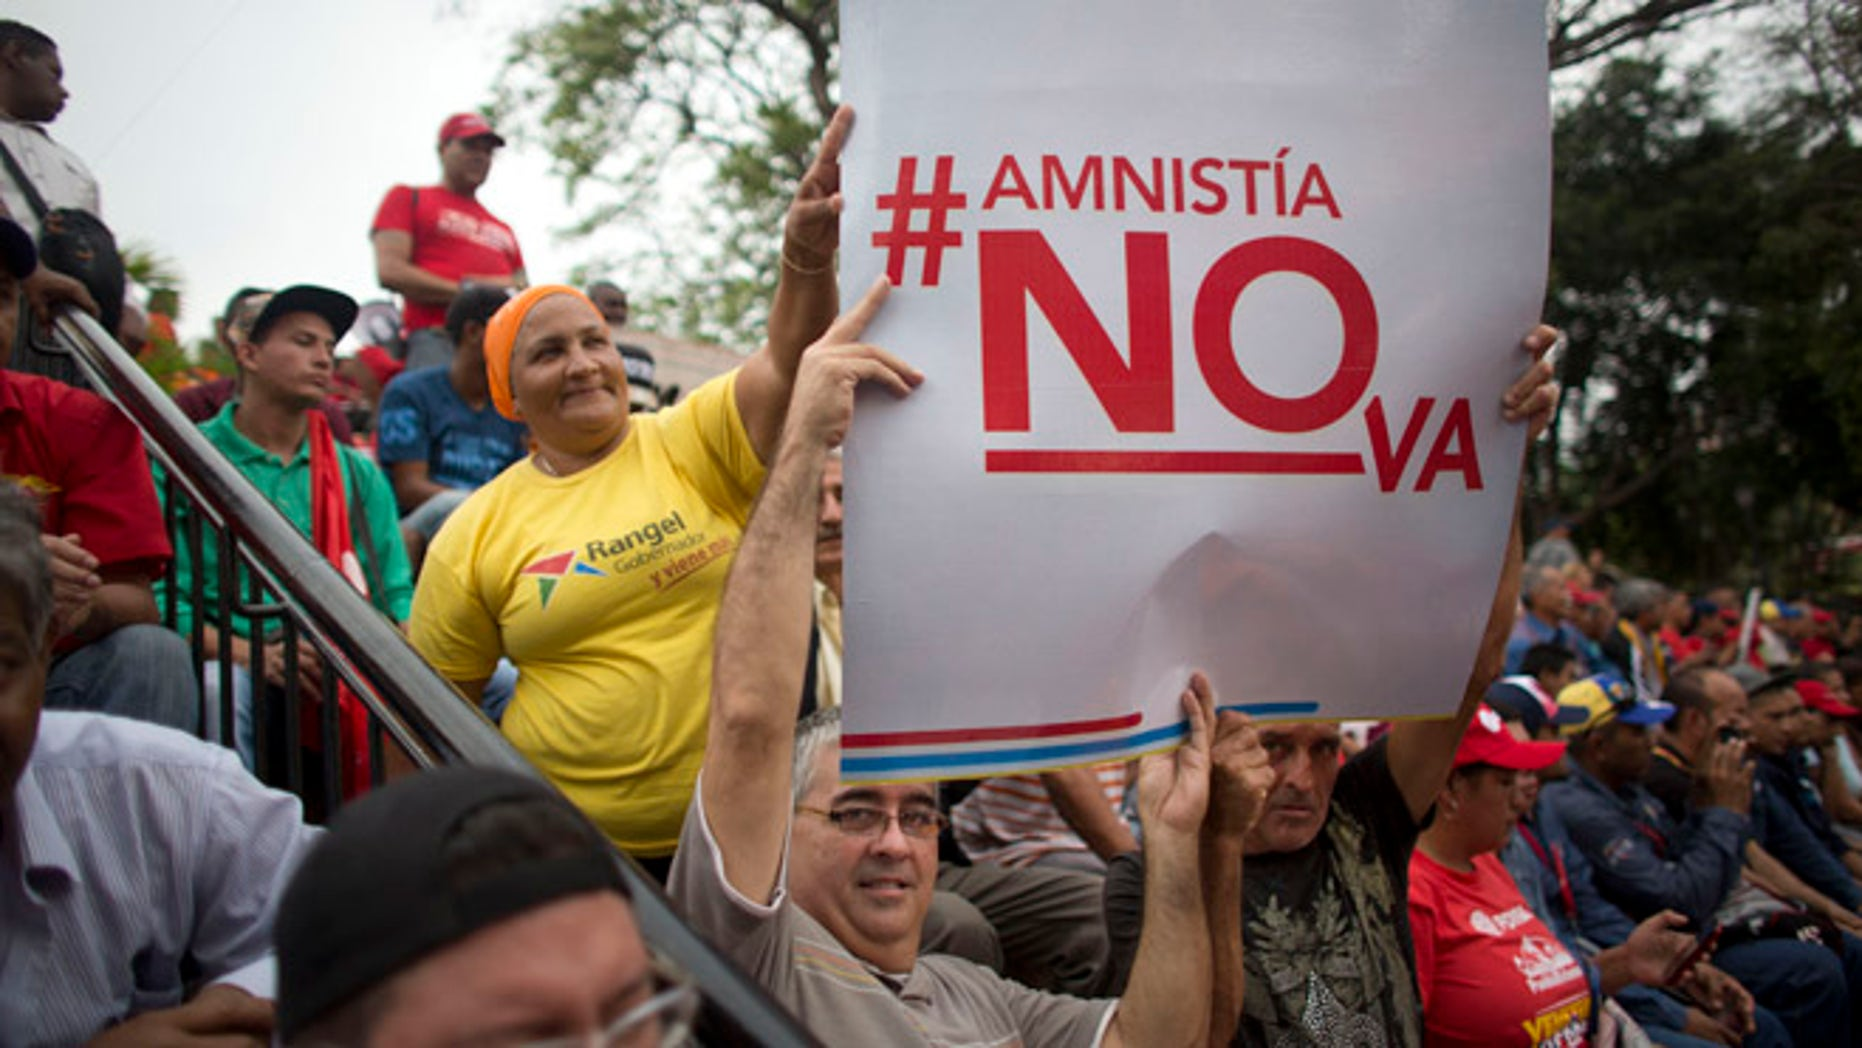 """Supporters of President Nicolas Maduro hold a sign that reads in Spanish """"Amnesty will not go"""" during a march, at Miraflores Presidential Palace in Caracas, Venezuela, Thursday, April 7, 2016. Groups allied to Venezuela's socialist administration marched to protest an amnesty law passed by the opposition controlled congress calling for release of those it deems to be political detainees. (AP Photo/Ariana Cubillos)"""